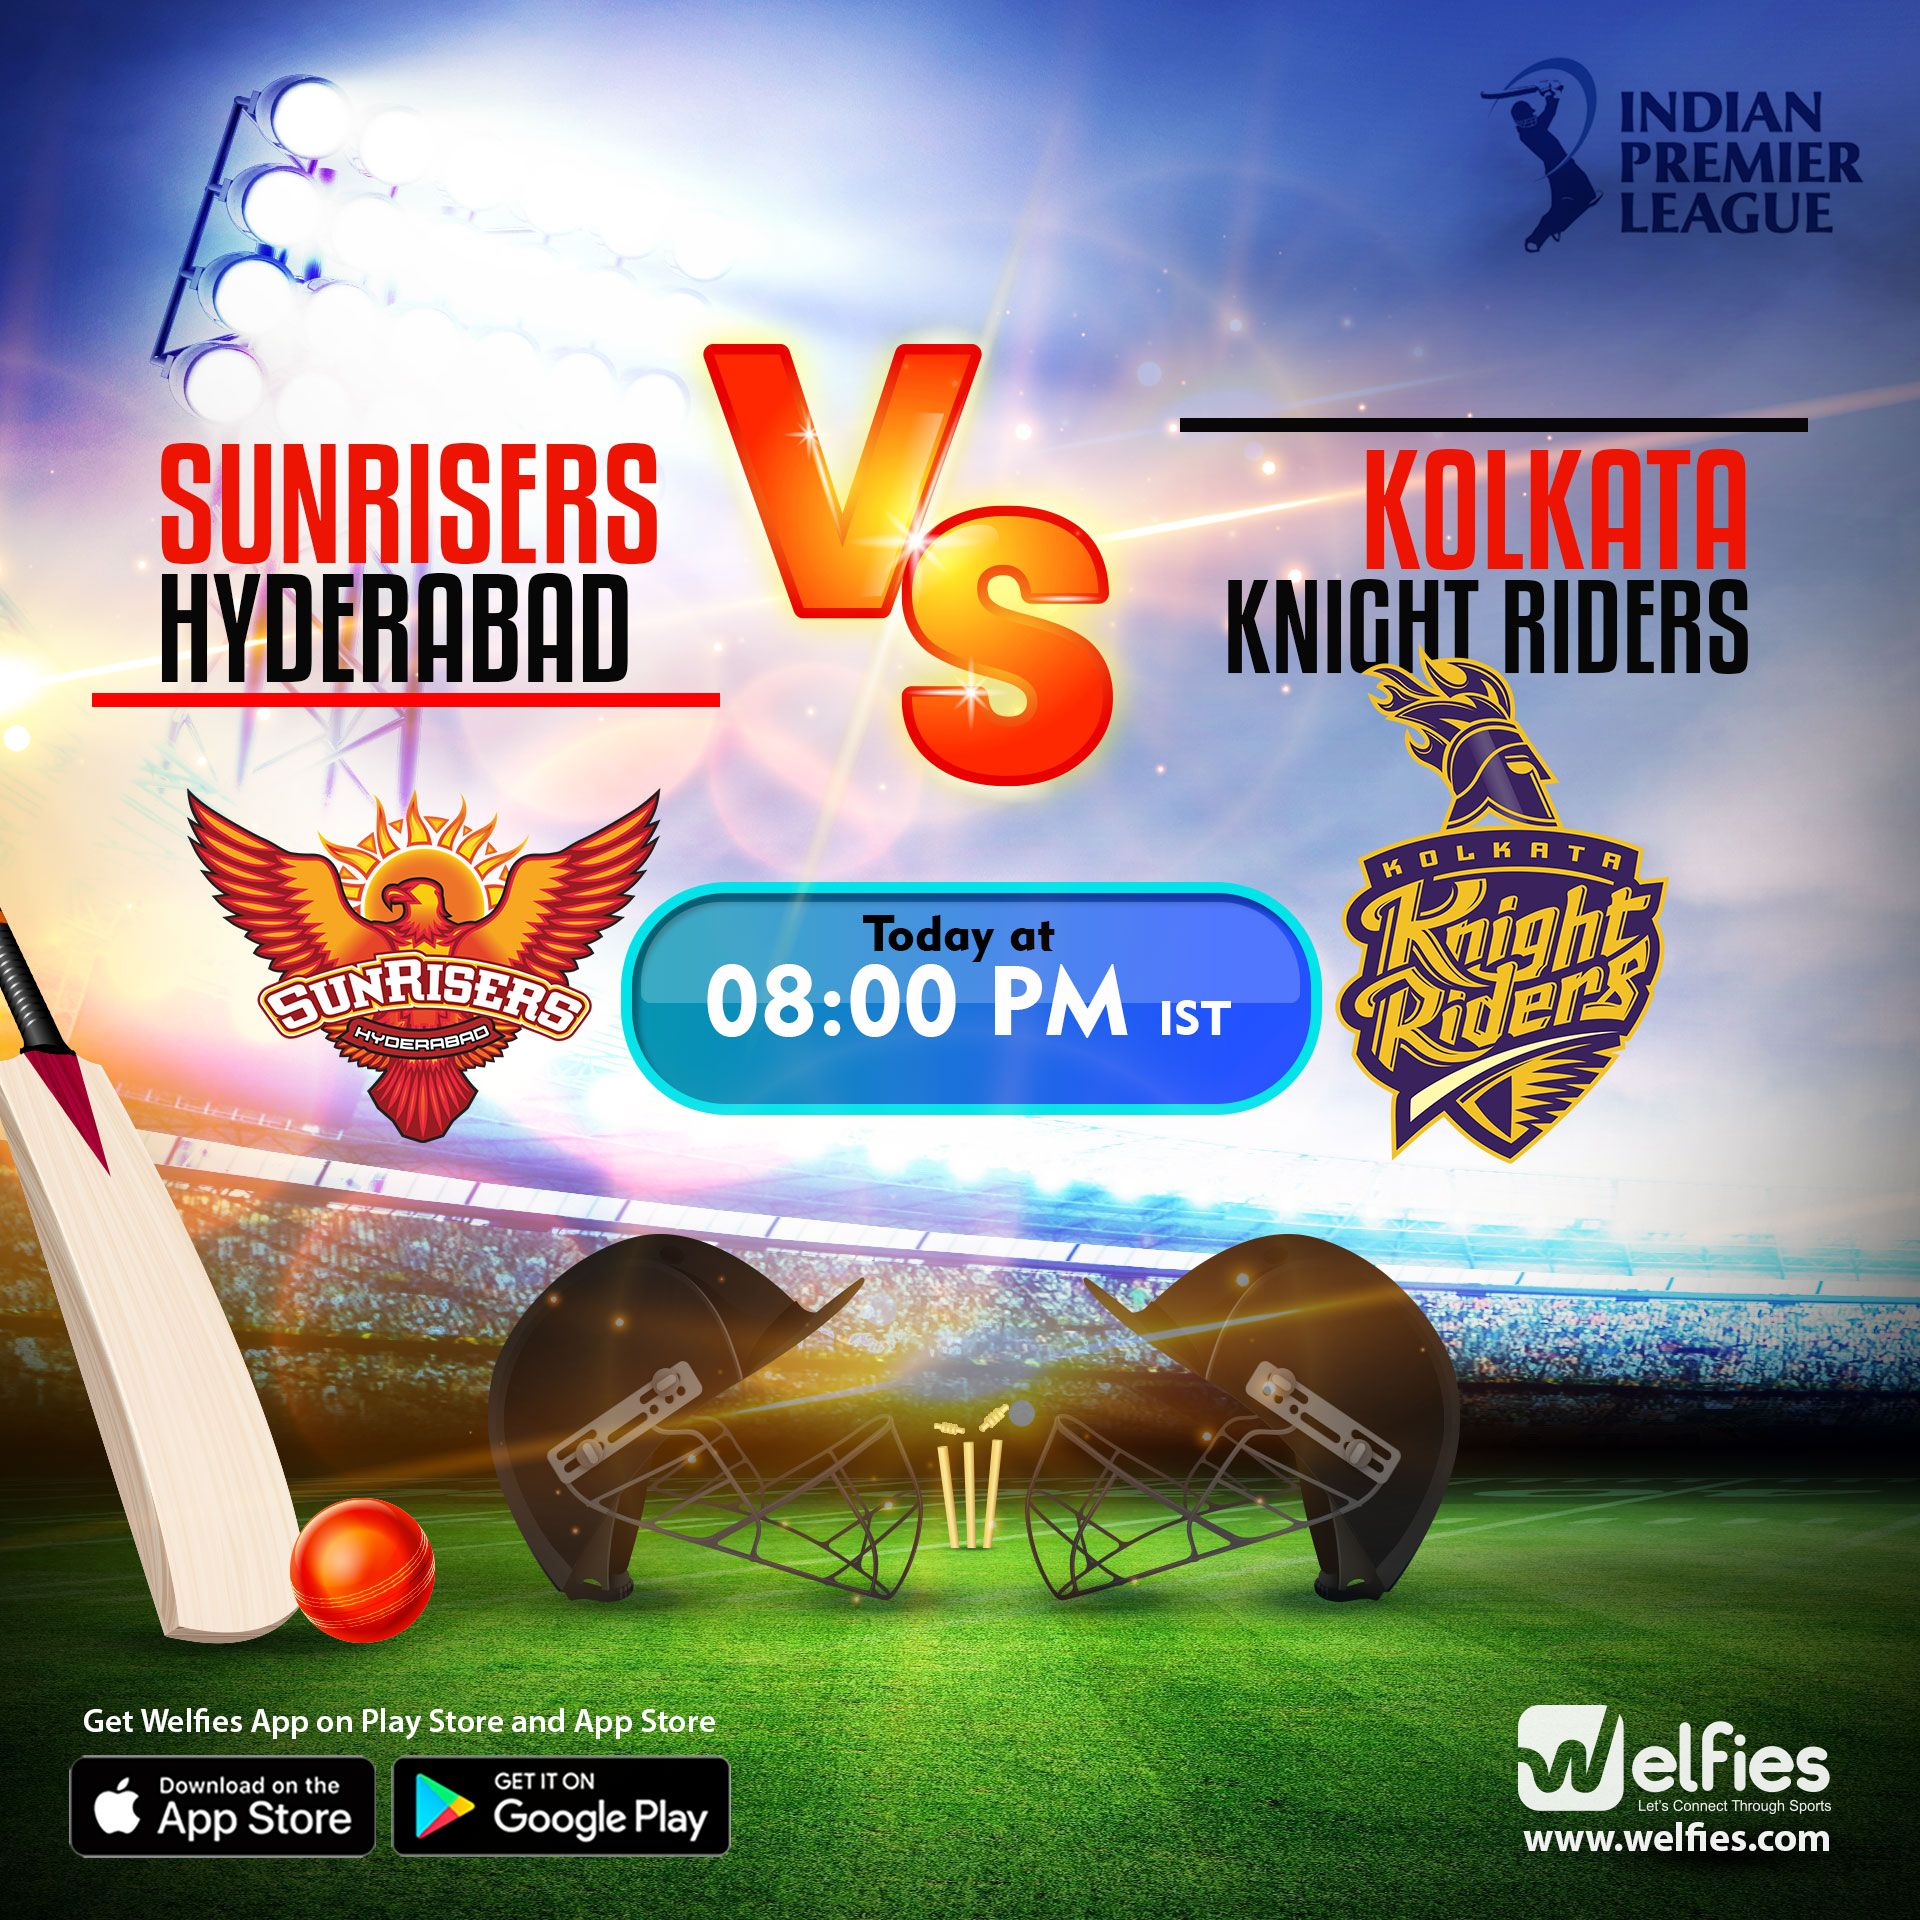 Kolkata Knight Riders are ready for the mustwin game